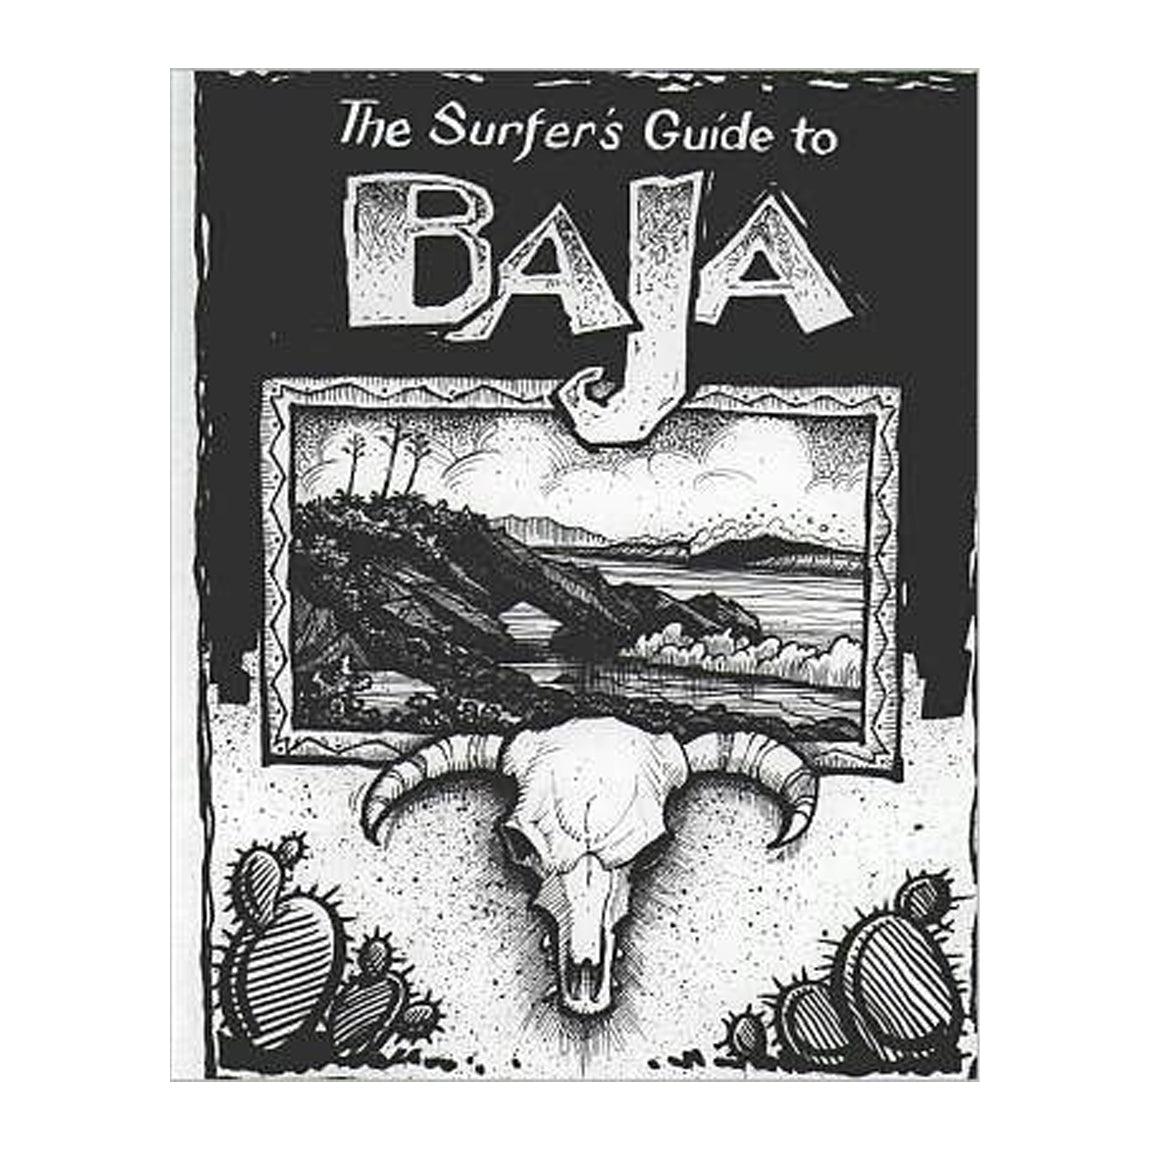 THE SURFERS GUIDE TO BAJA BY MIKE PARISE